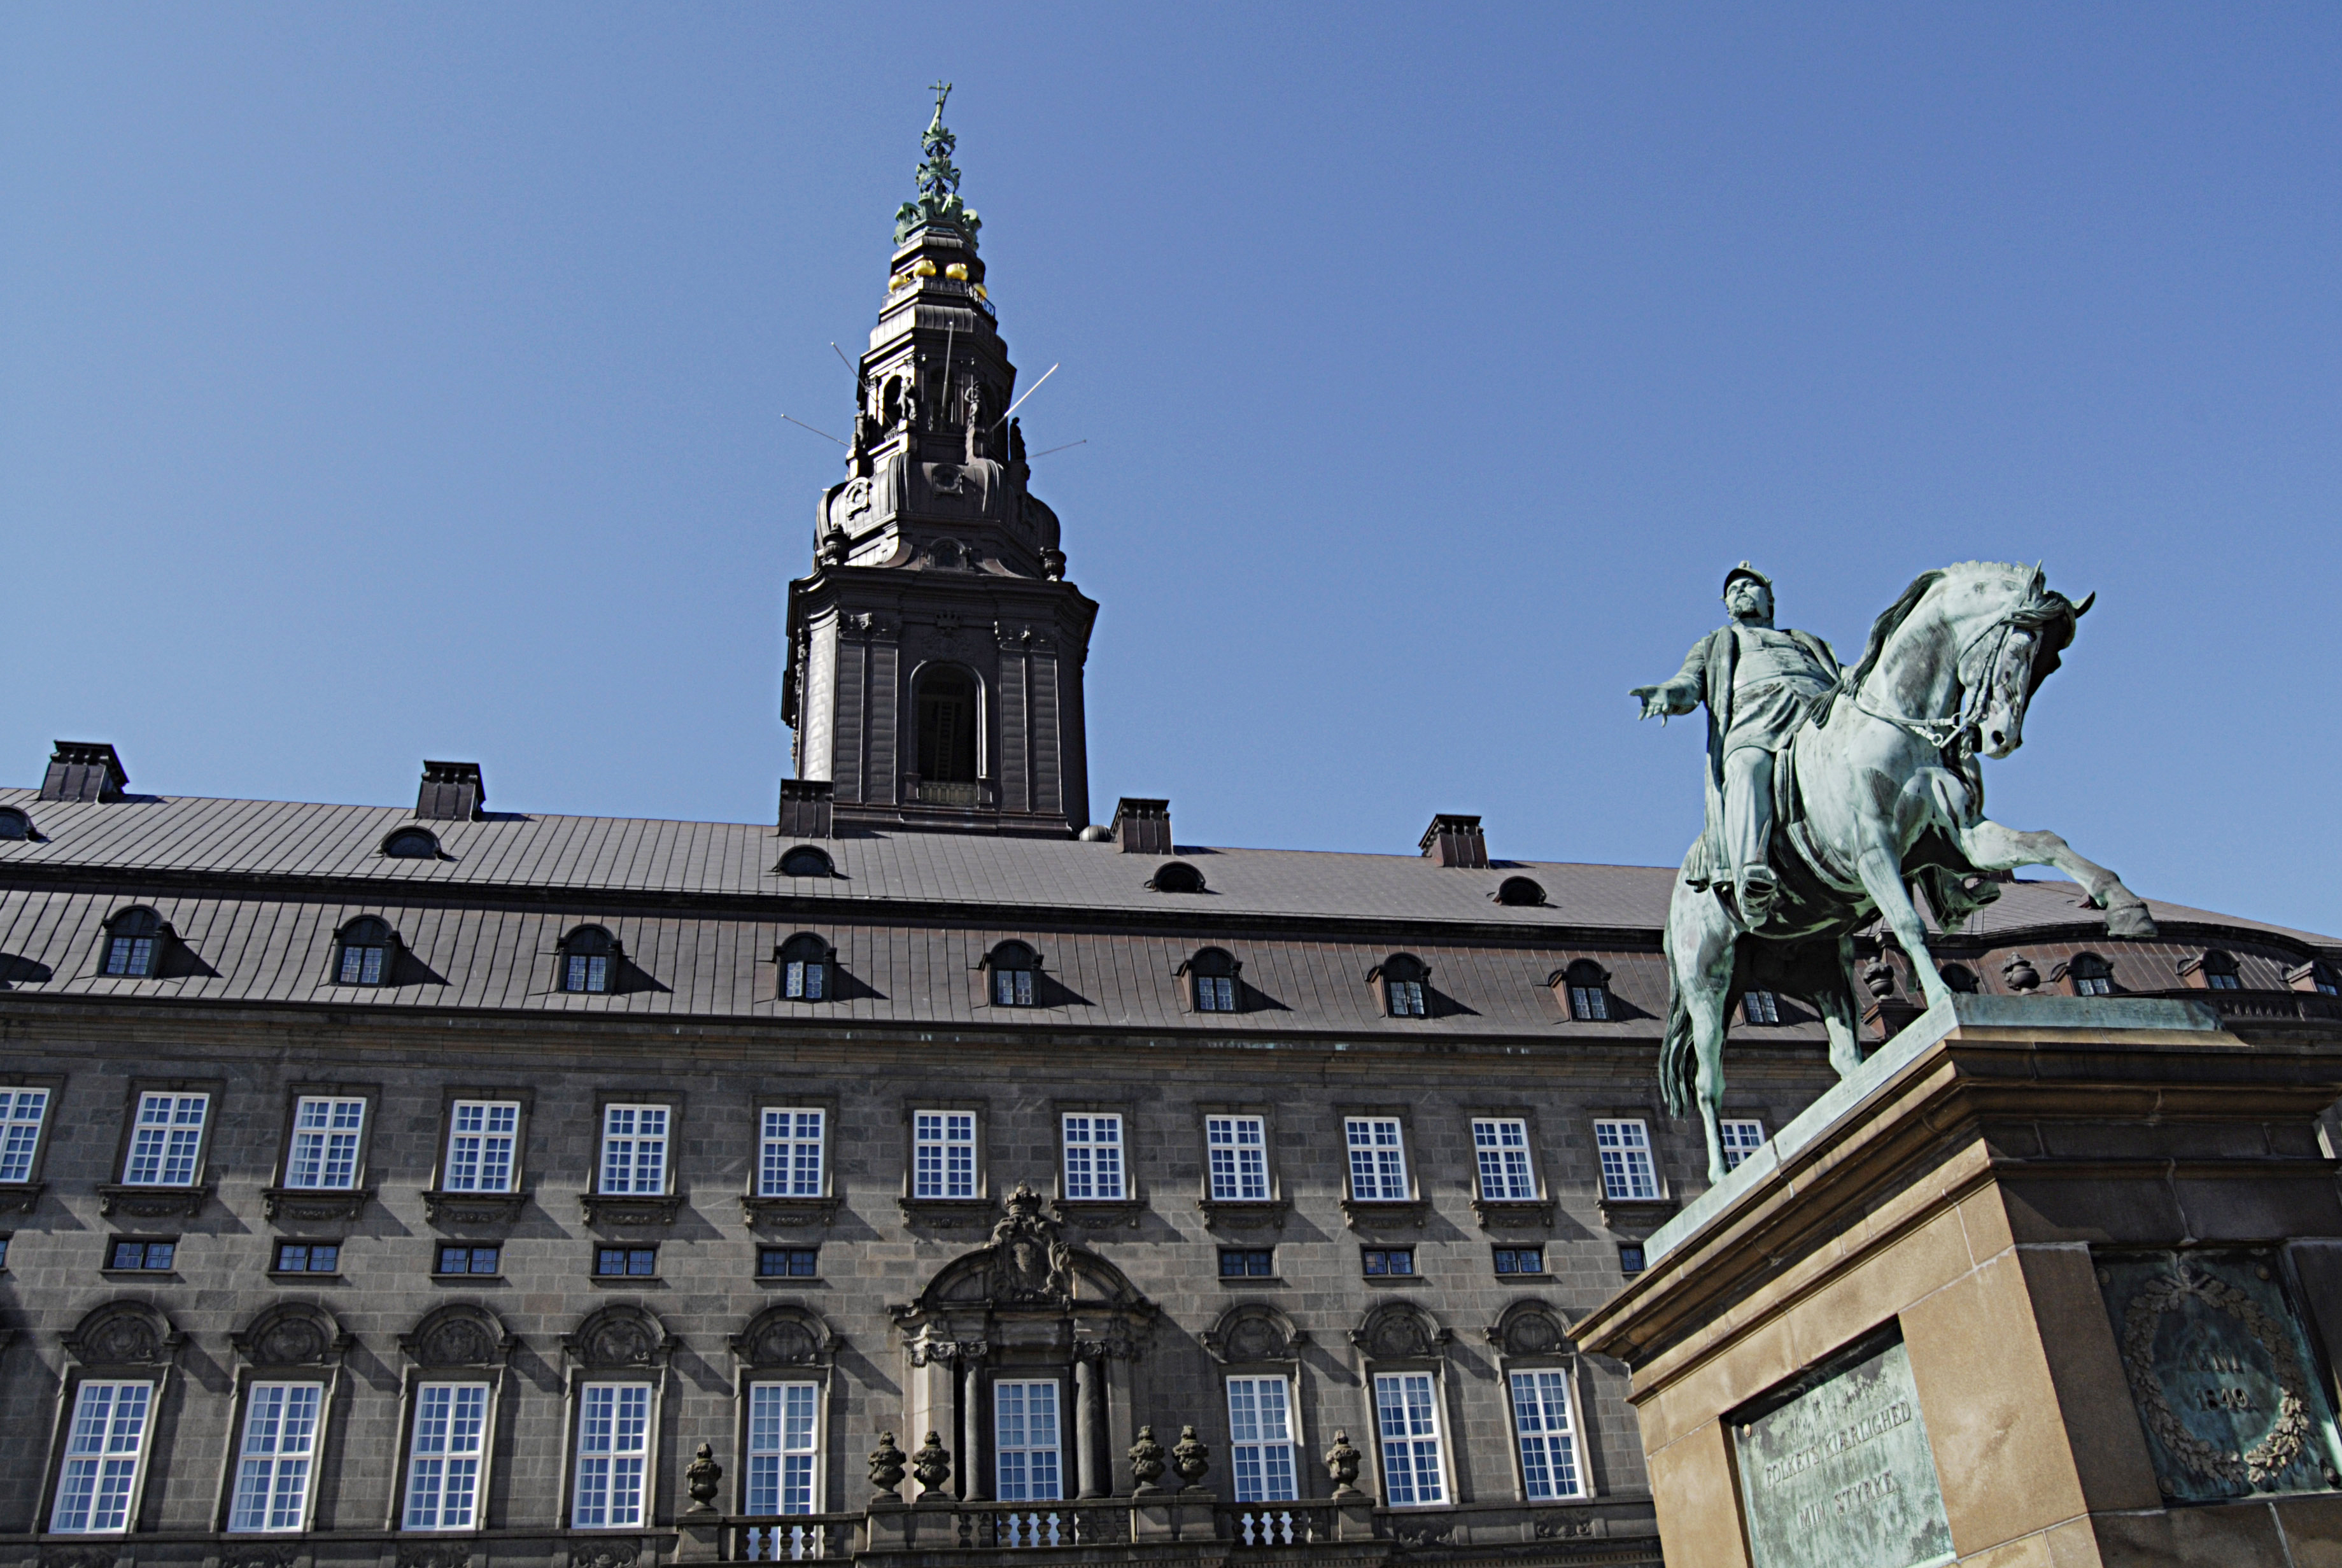 Christiansborg palace where the Danish parliament resides April 28, 2014.